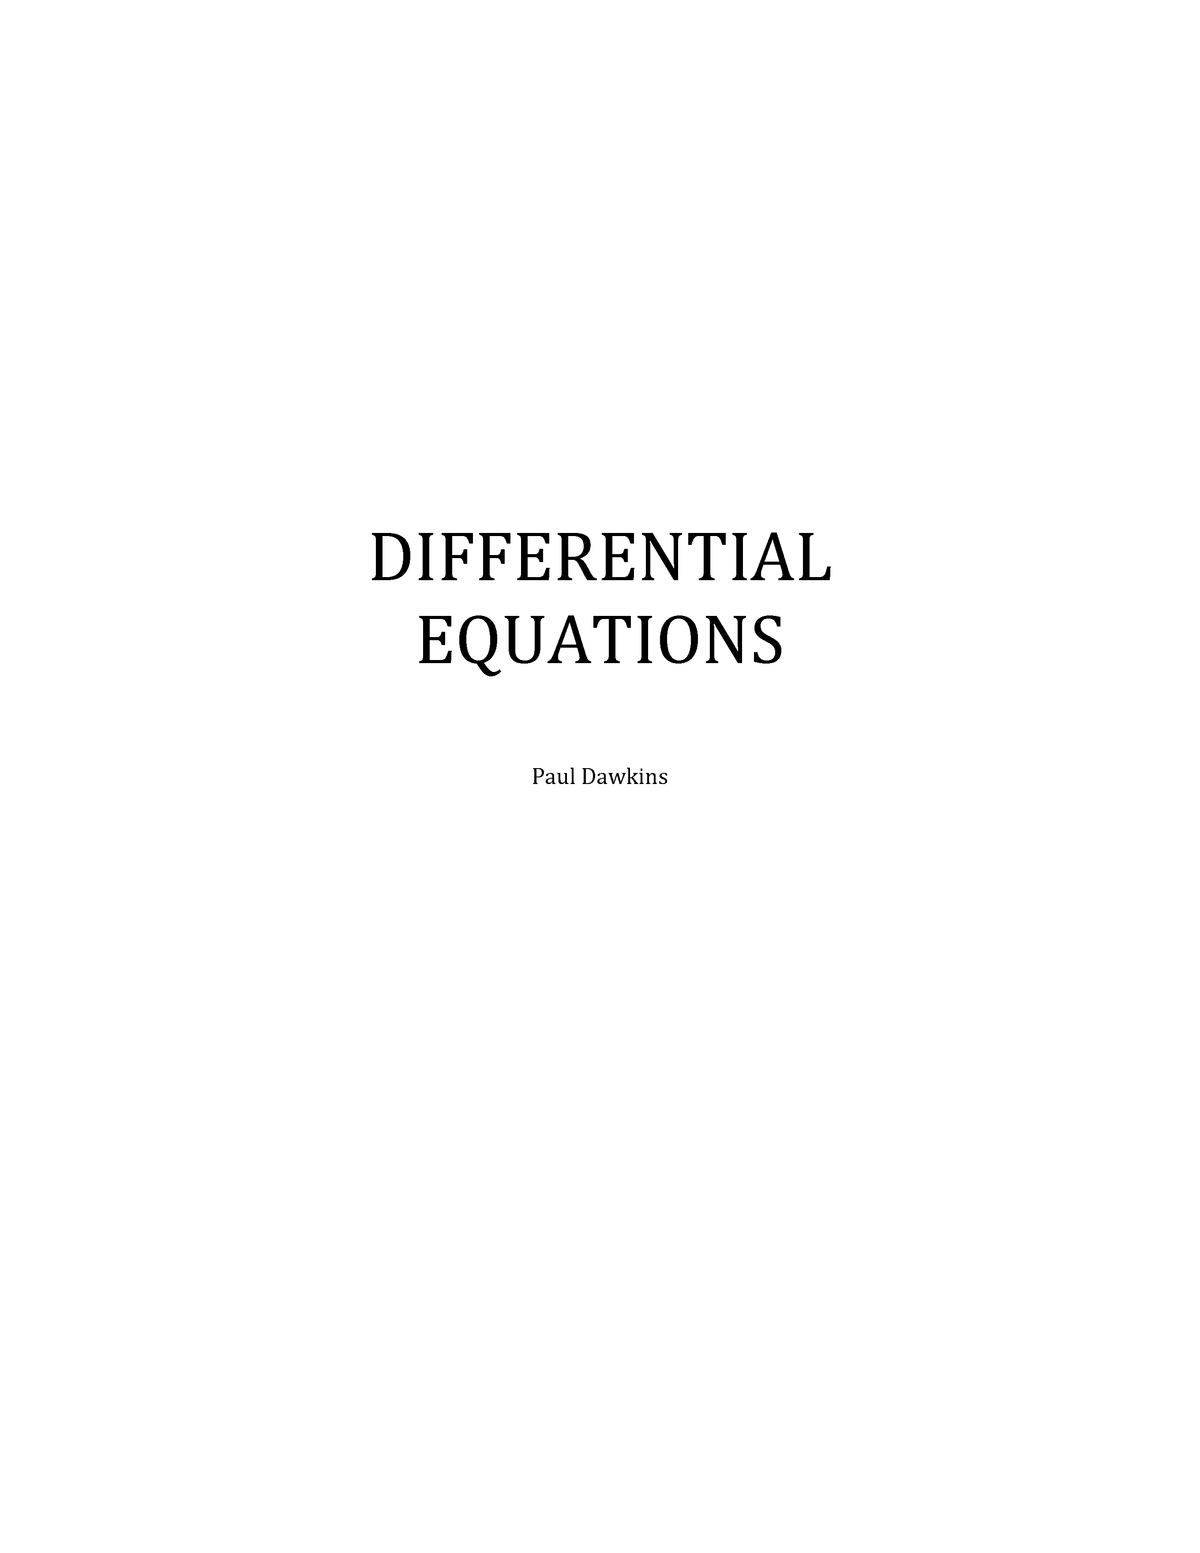 De Complete Paul Dawkins New Differential Equations Paul Dawkins Differential Studocu In this section we will take a look at the first method that can be used to find a particular solution to a nonhomogeneous differential equation. de complete paul dawkins new